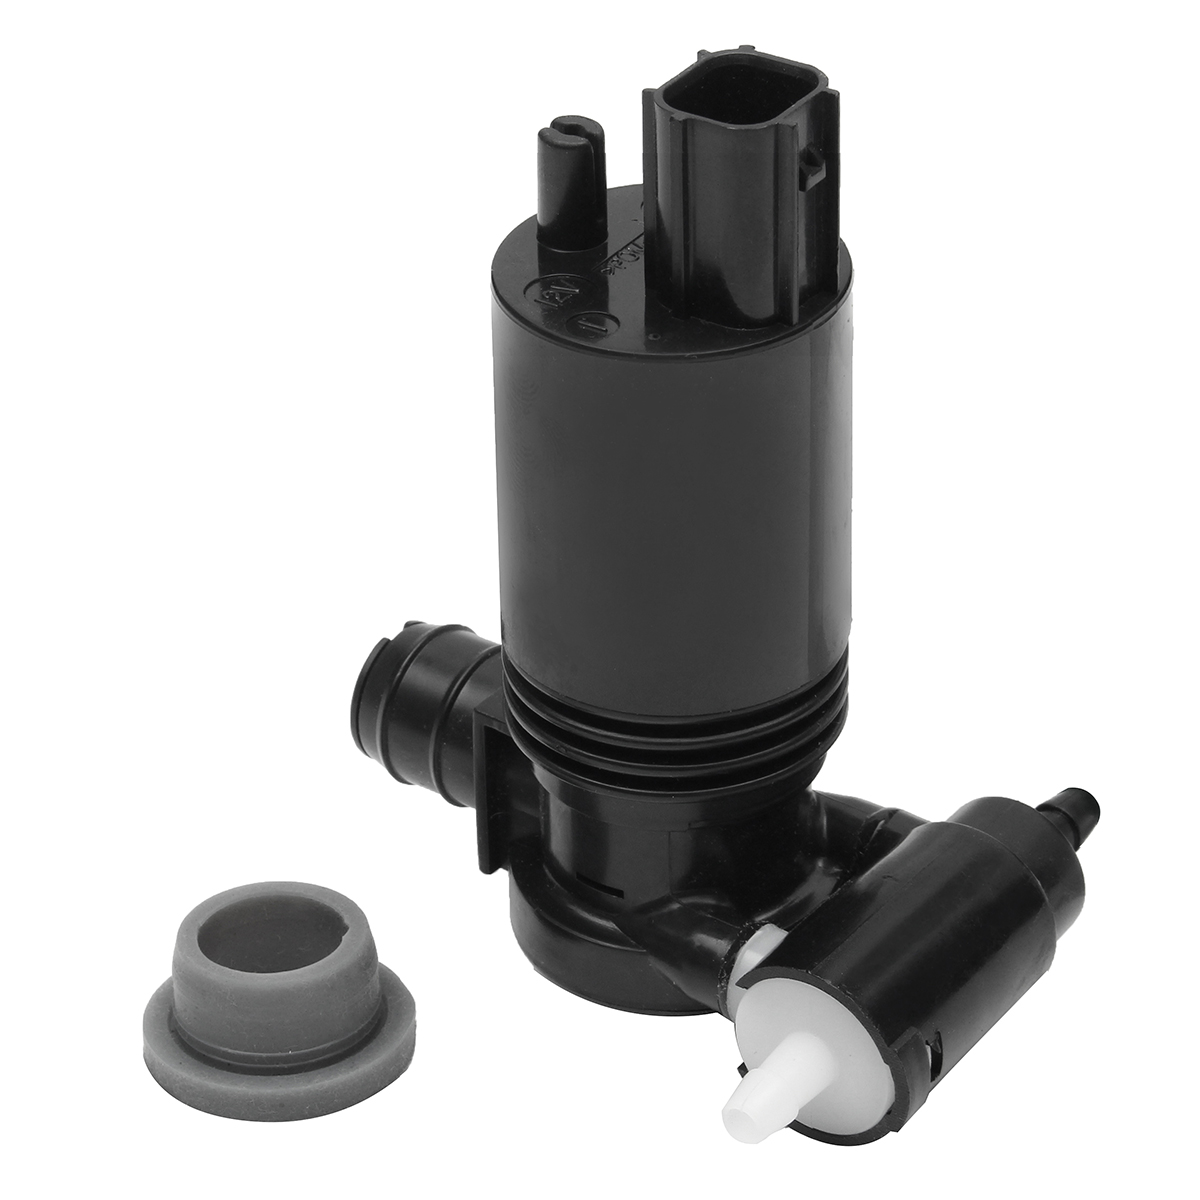 High quality Windshield Washer Water Pump with Grommet for Chrysler for Dode For Jeep New Car Cooling System Auto AccessoriesHigh quality Windshield Washer Water Pump with Grommet for Chrysler for Dode For Jeep New Car Cooling System Auto Accessories